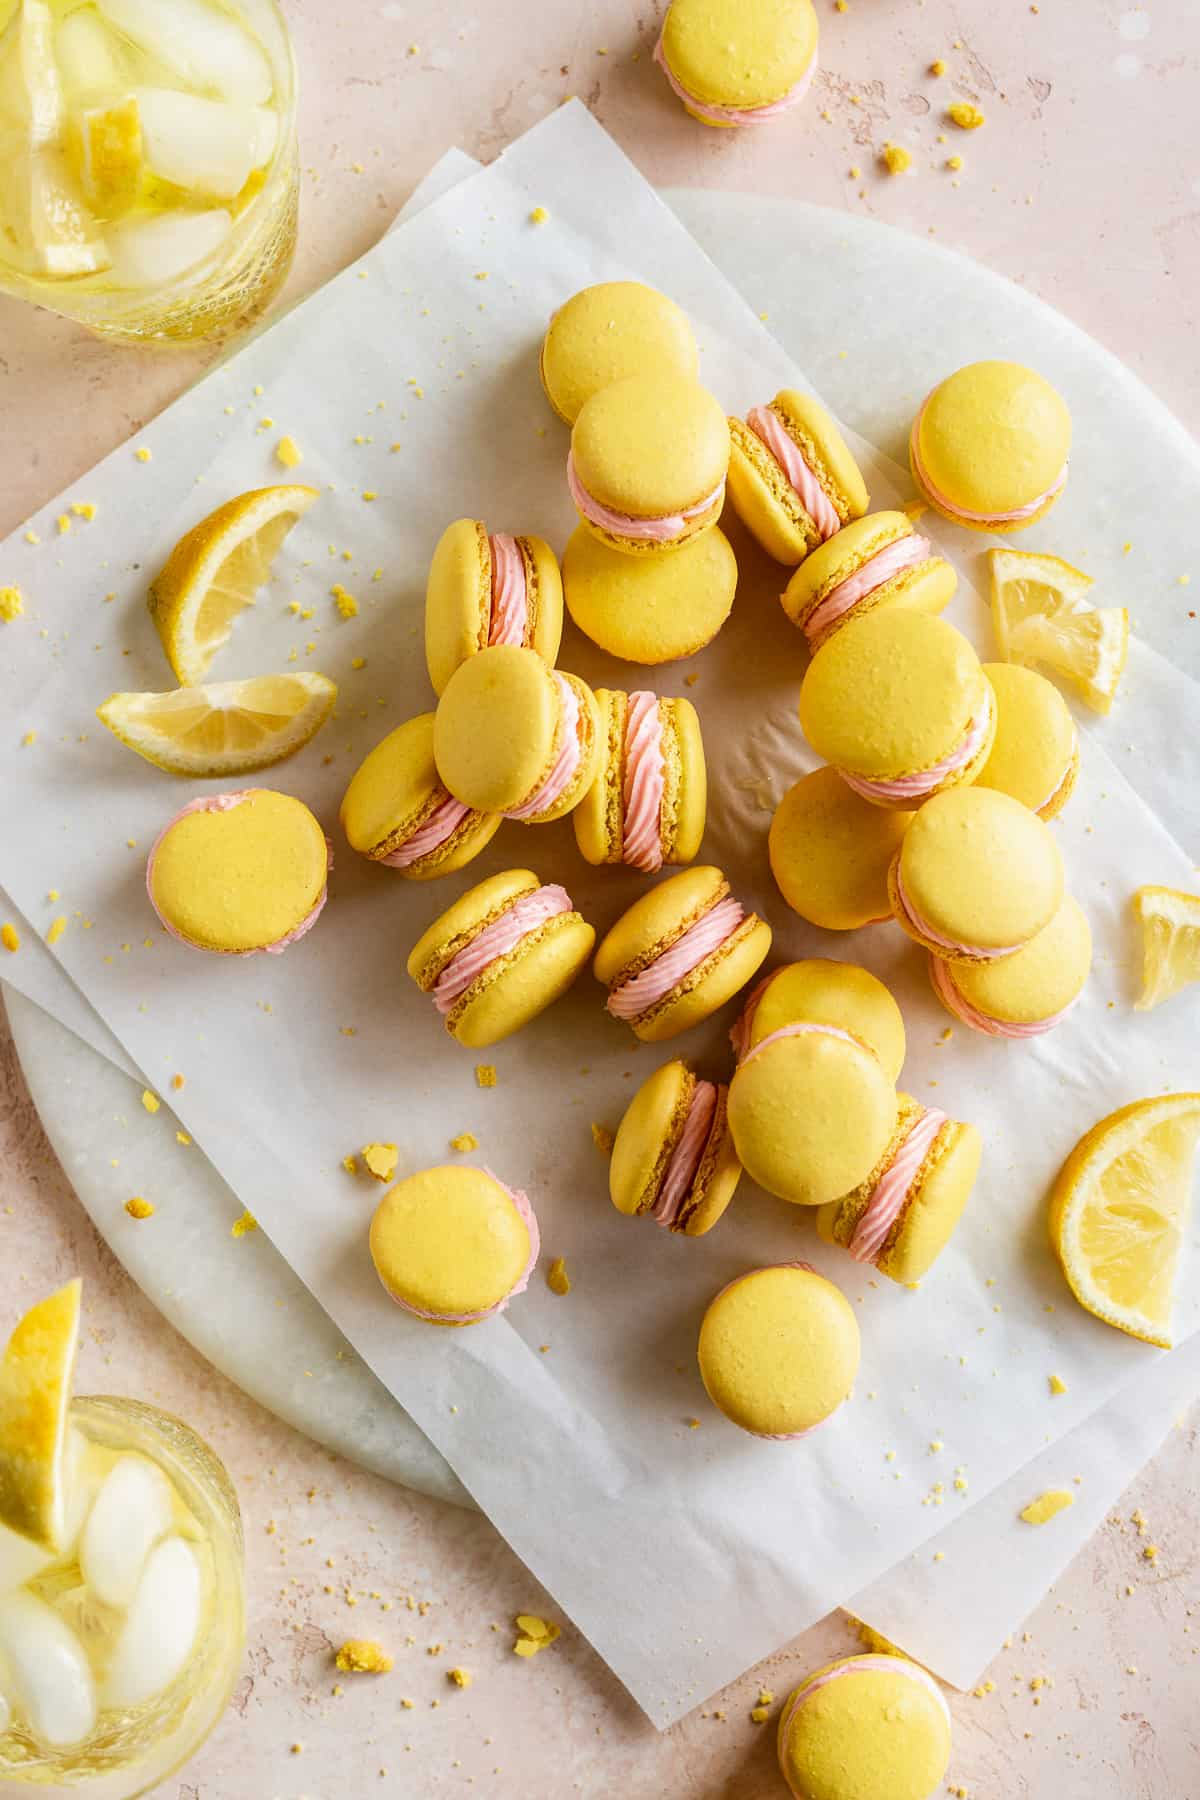 Lemon colored macarons with pink icing piled on round platter.